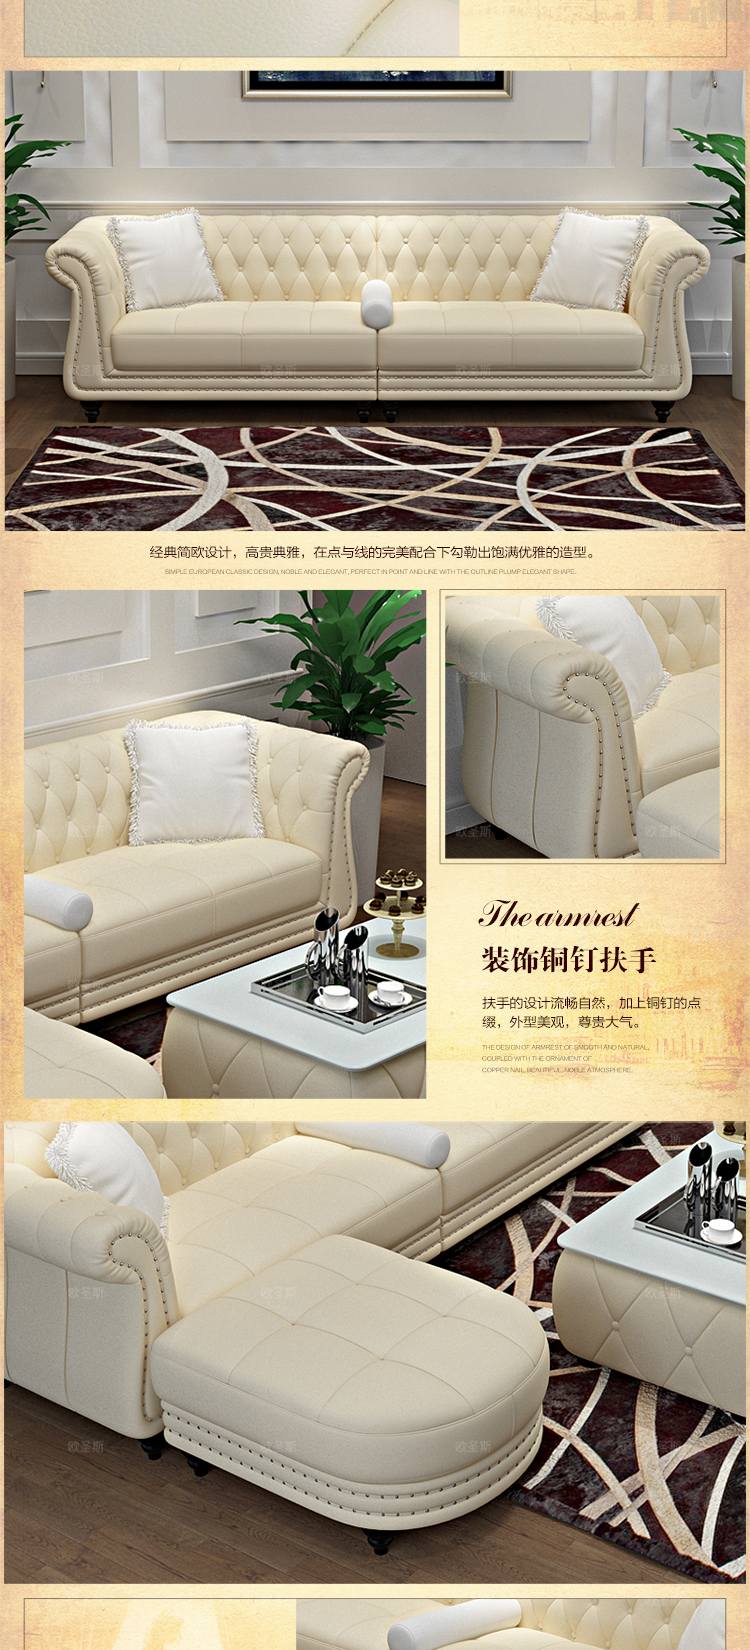 OSHINES FURNITURE Factory Direct Wholesale Bright Colored Italian Classic  Leather Sofa Set W35H